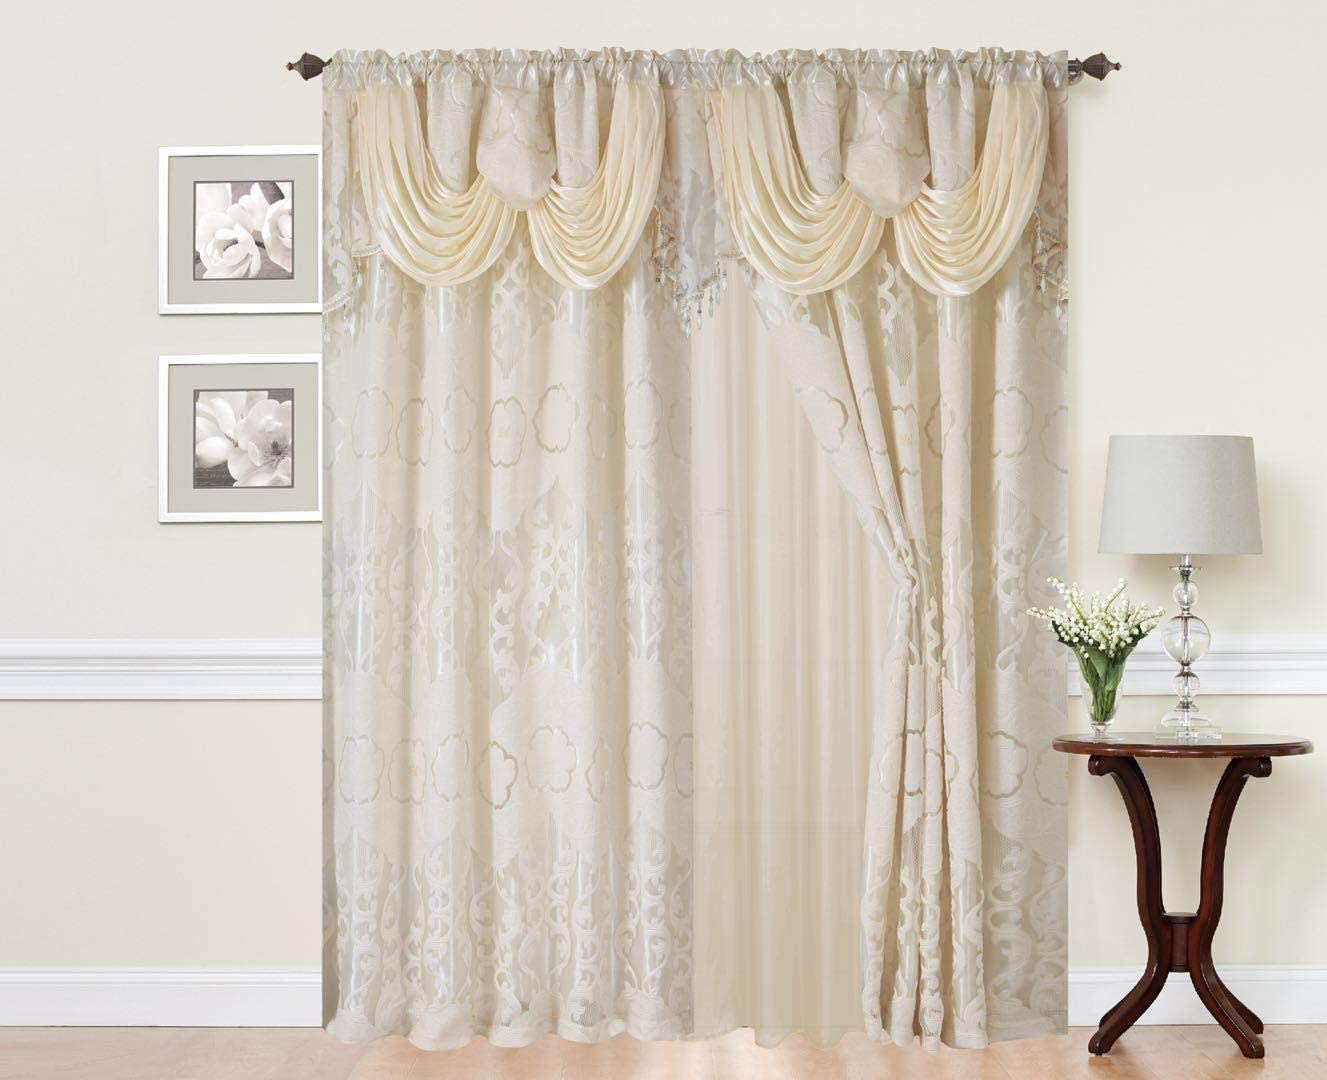 Sapphire Home Rod Pocket Window 84 Inch Length Curtain Drape Panels w Attached Valance Sheer Backing 2 Tassels – Traditional Floral Curtain Drape Set for Living and Dining Rooms, Julia Beige